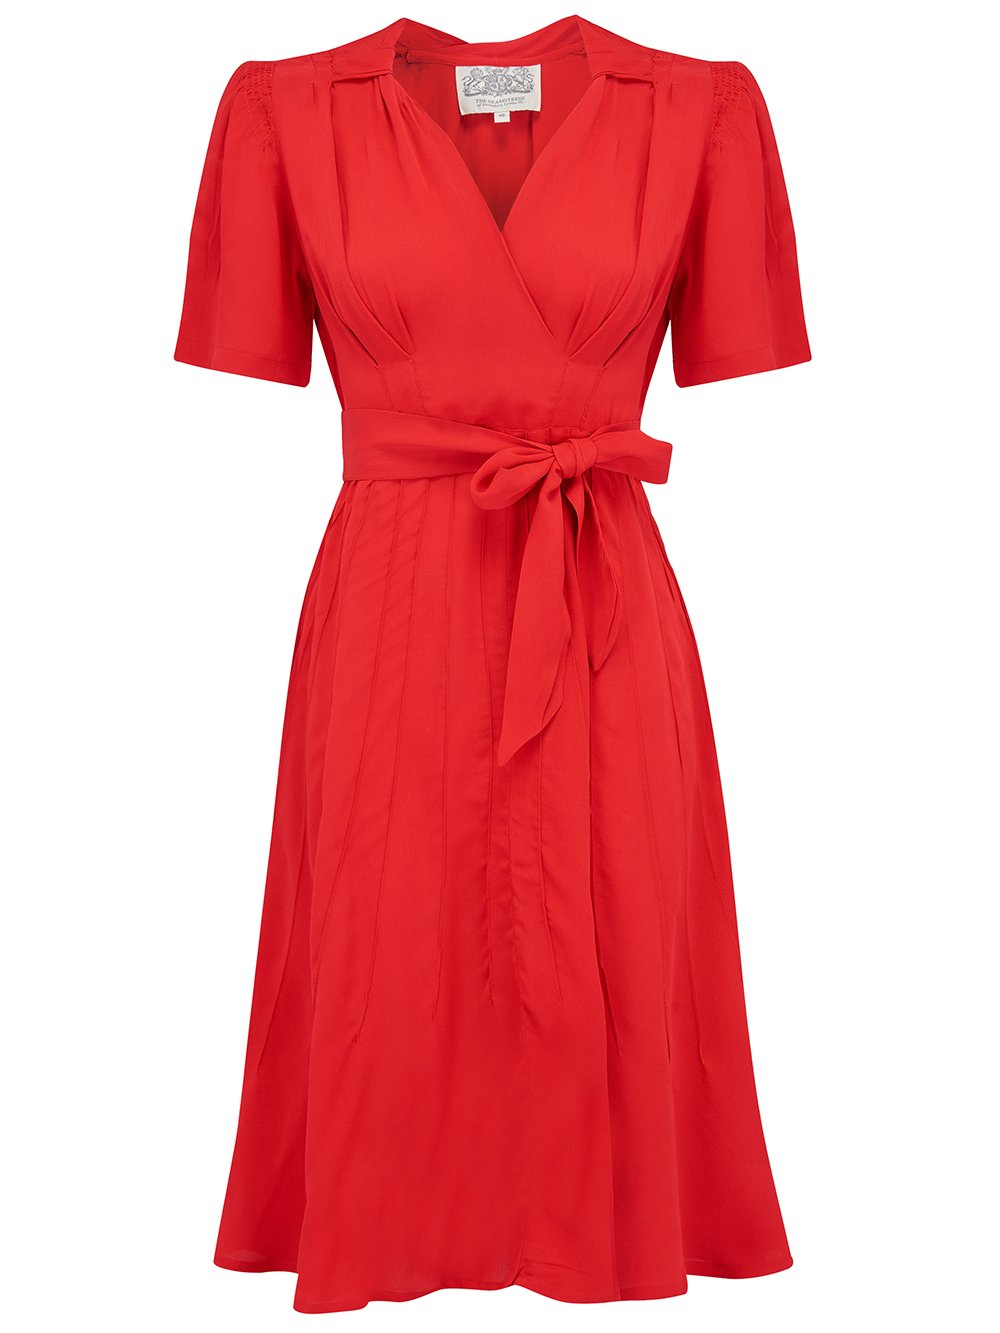 """Nancy"" Tea Dress in Pilliar Box Red made by The Seamstress of Bloomsbury, Classic 1940s Vintage Inspired Style"